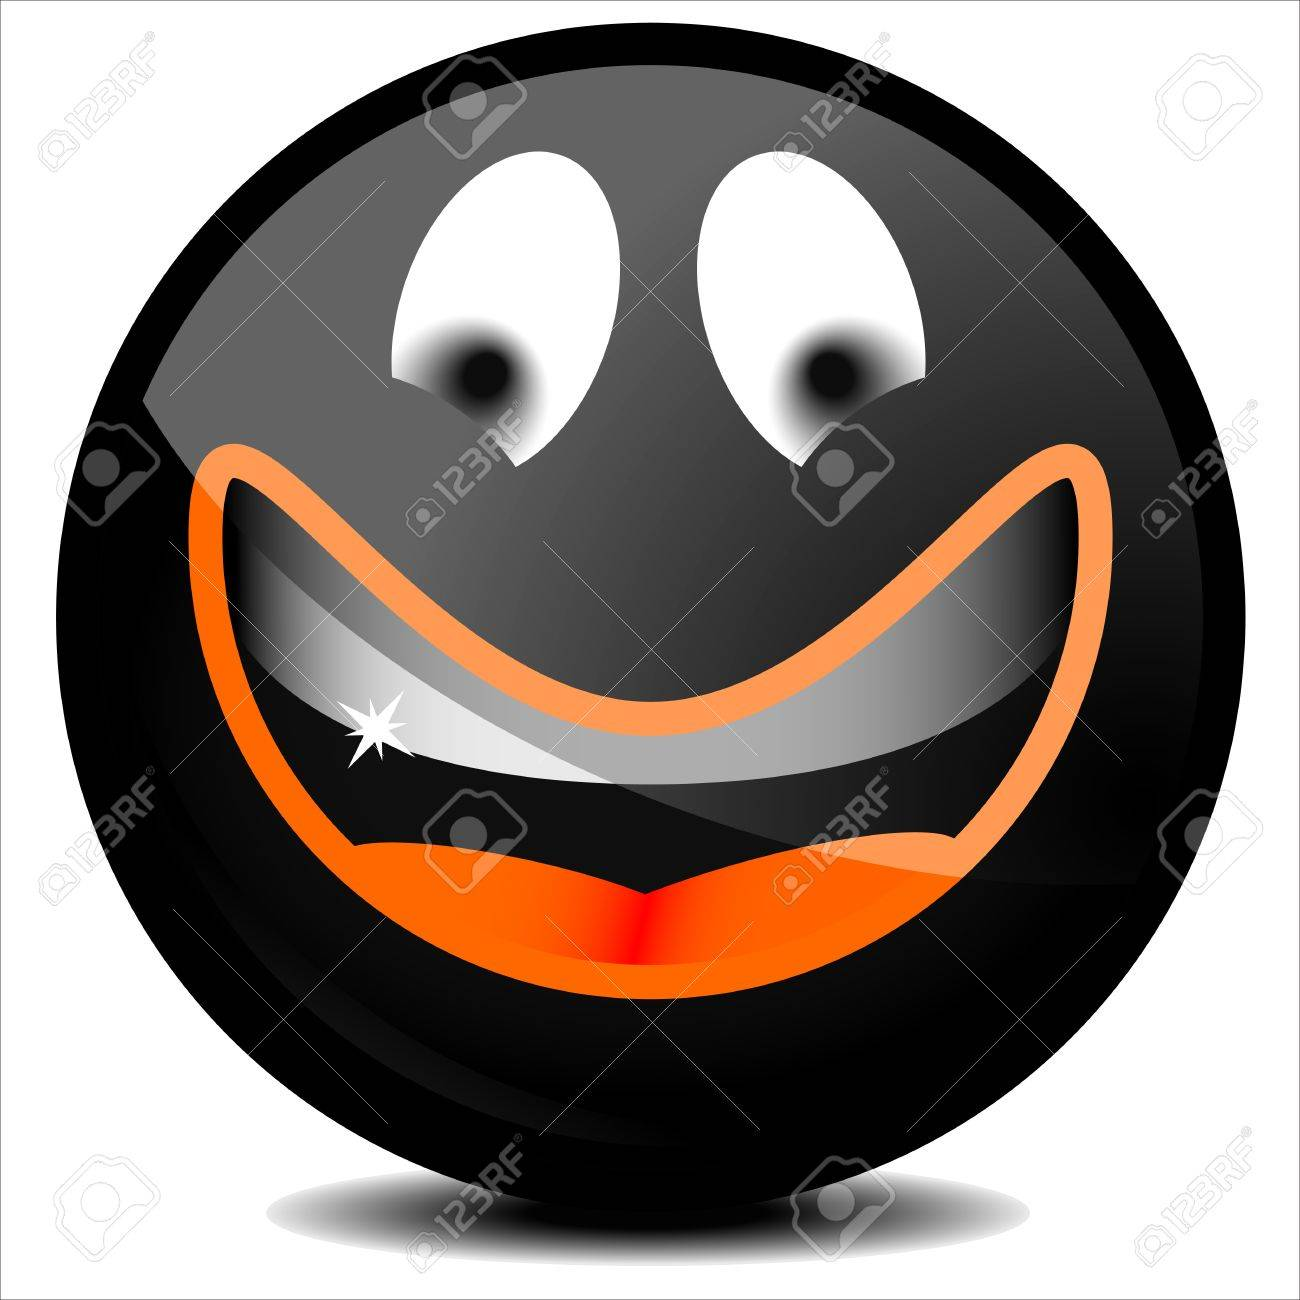 smile face, Have A Nice Day Stock Vector - 20043924